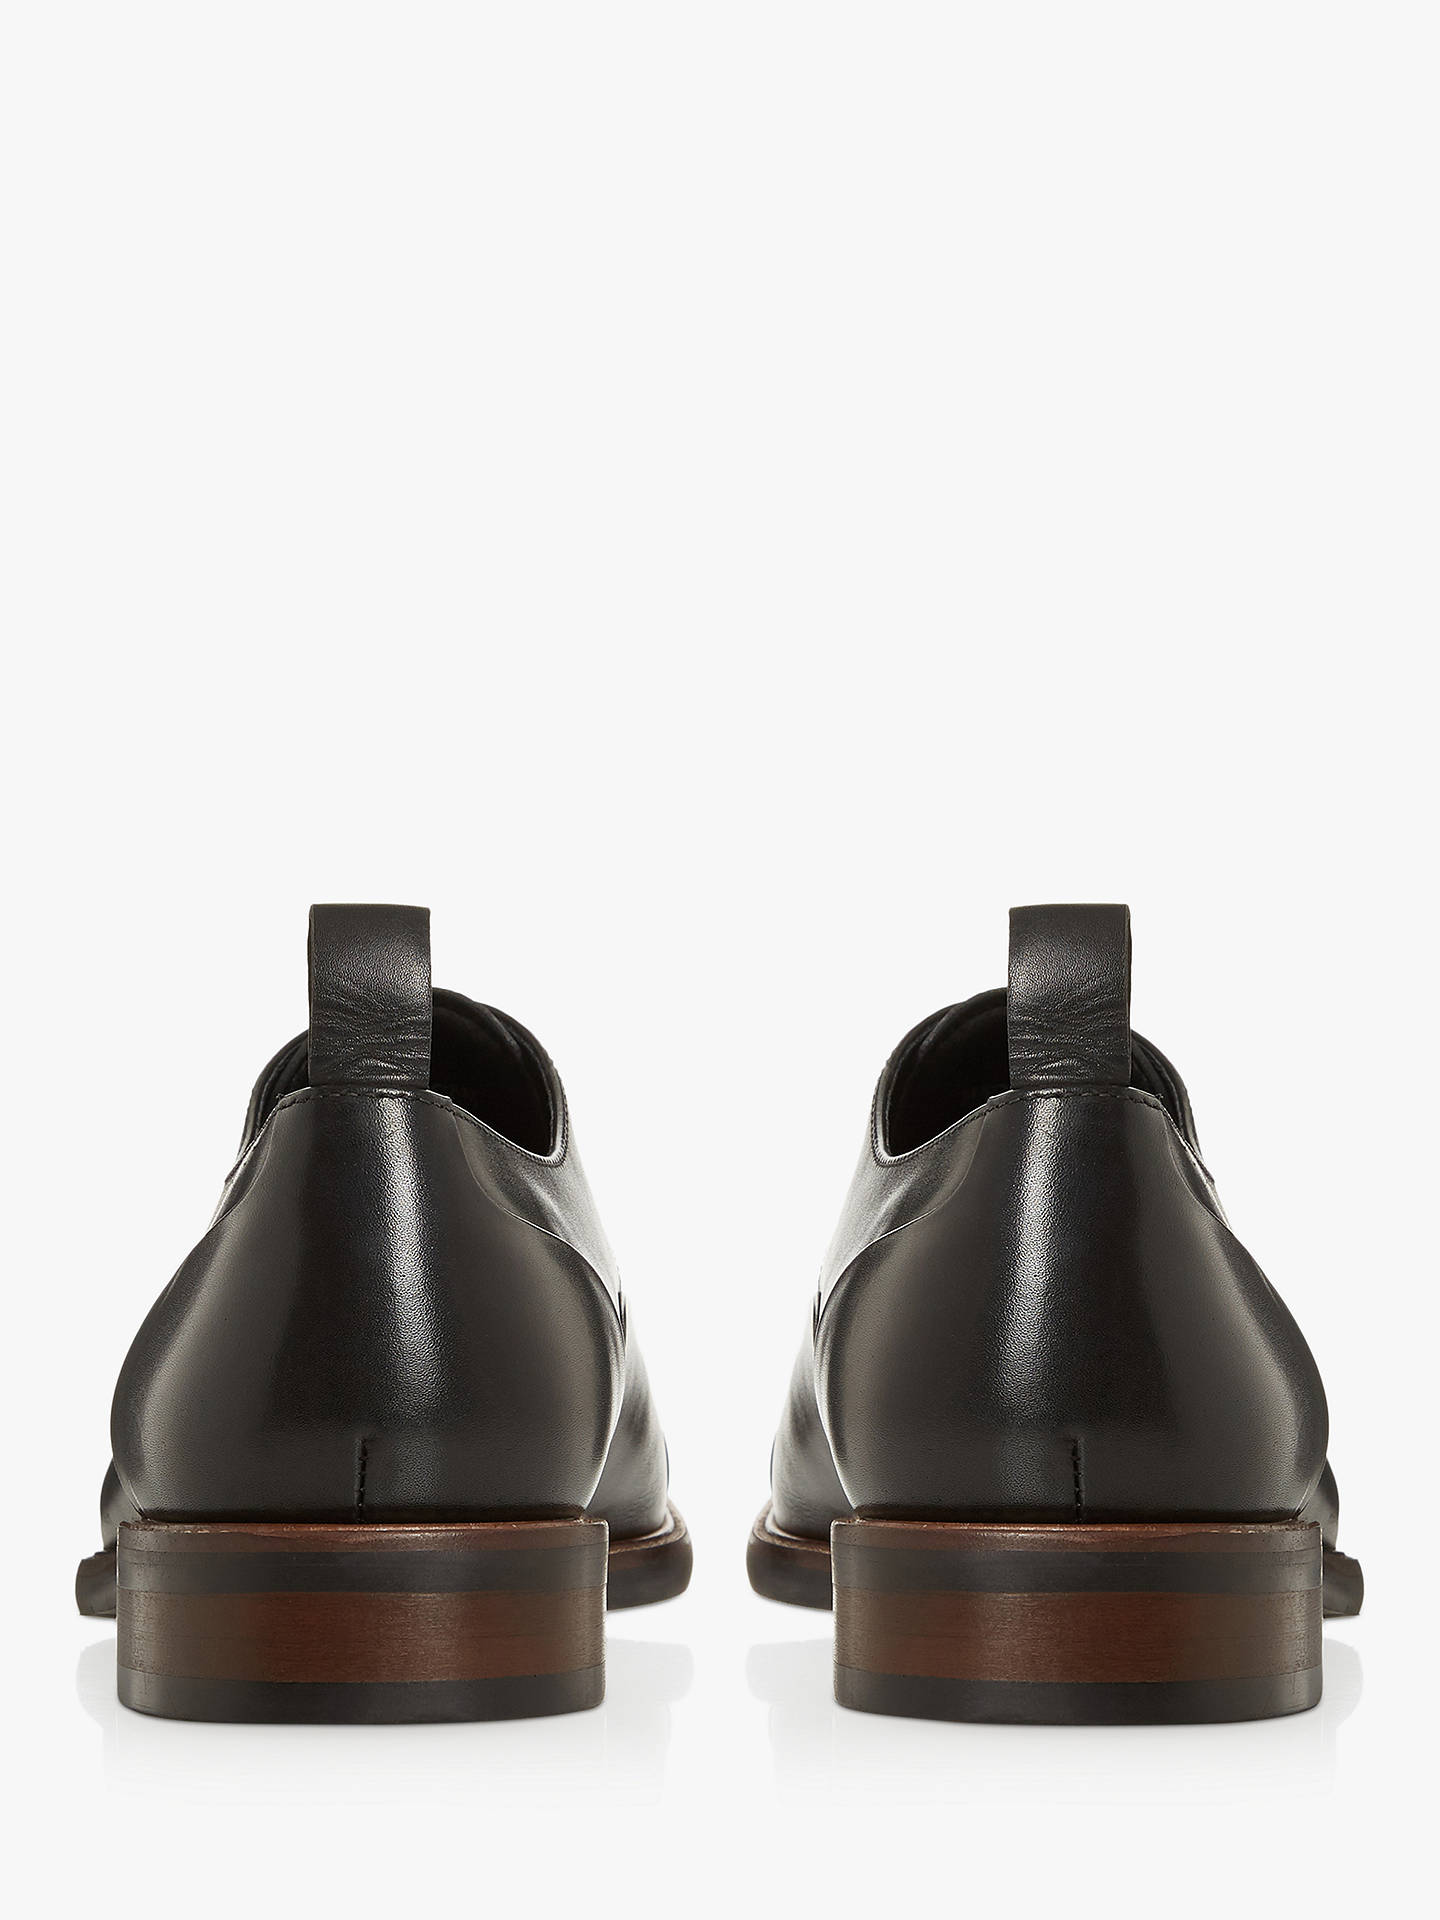 Buy Bertie Purlieu Toecap Oxford Shoes, Black, 7 Online at johnlewis.com